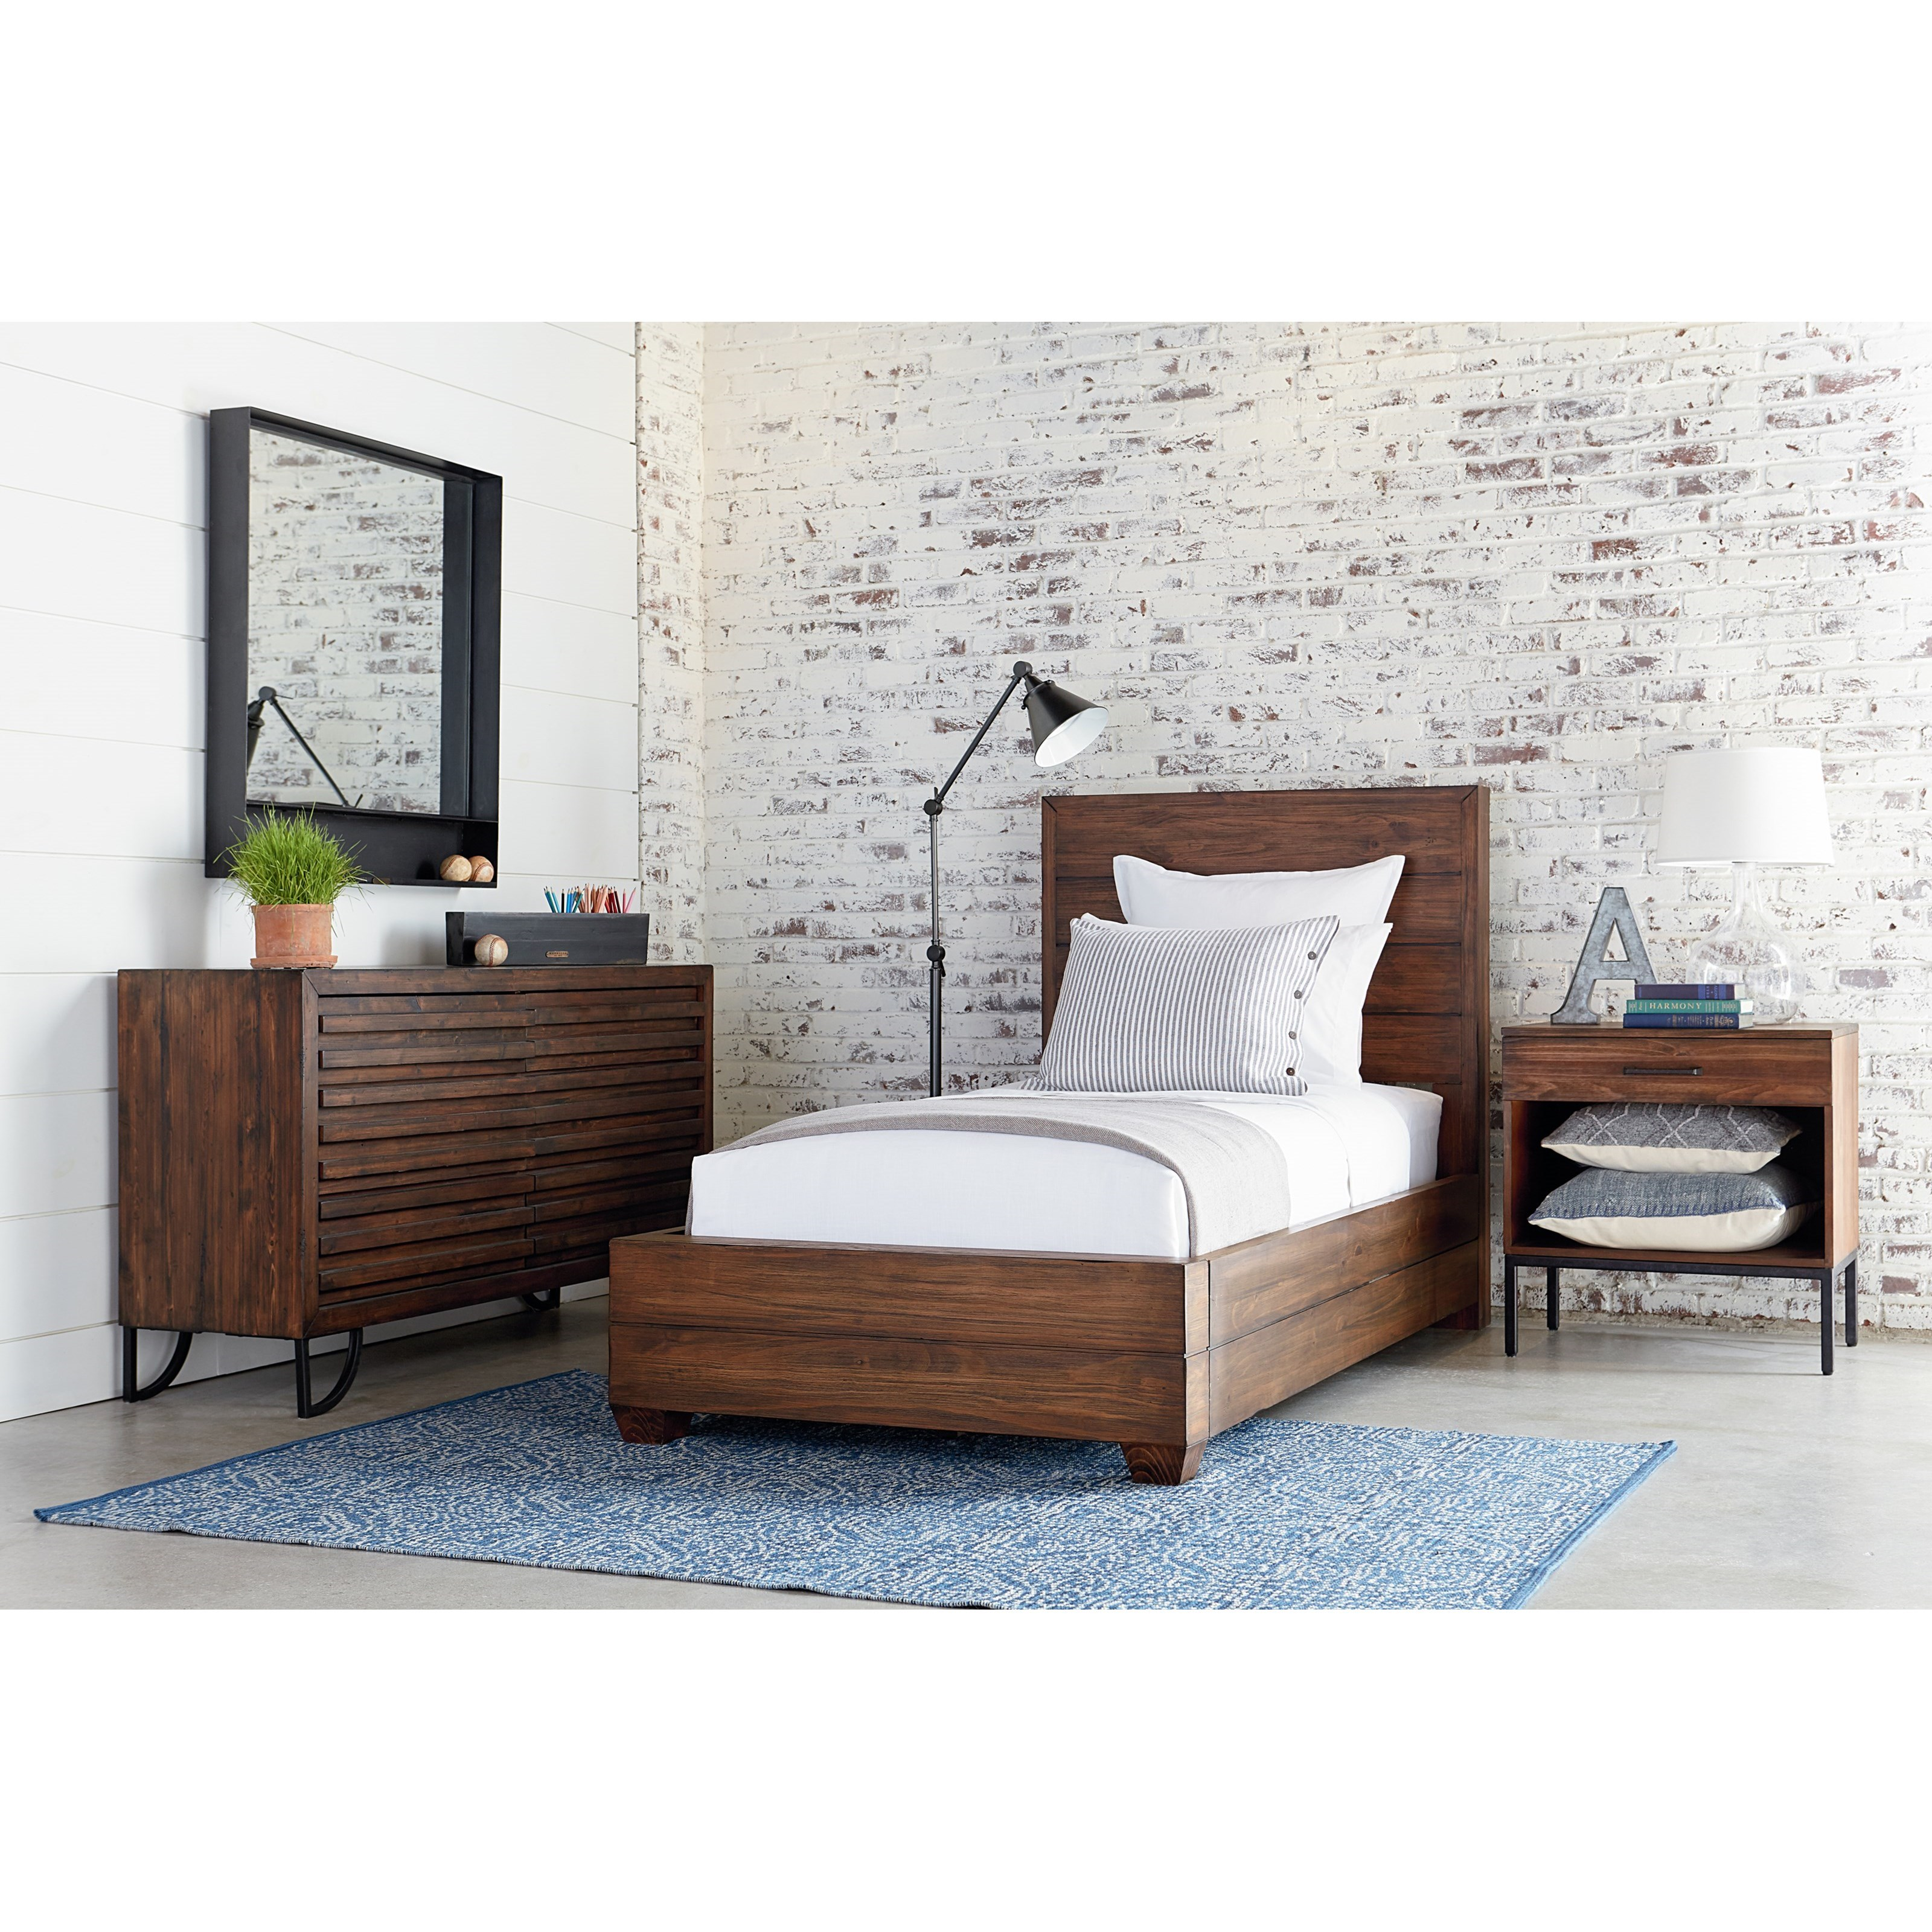 Industrial Twin Headboard And Footboard Bed By Magnolia Home By Joanna Gaines Wolf And